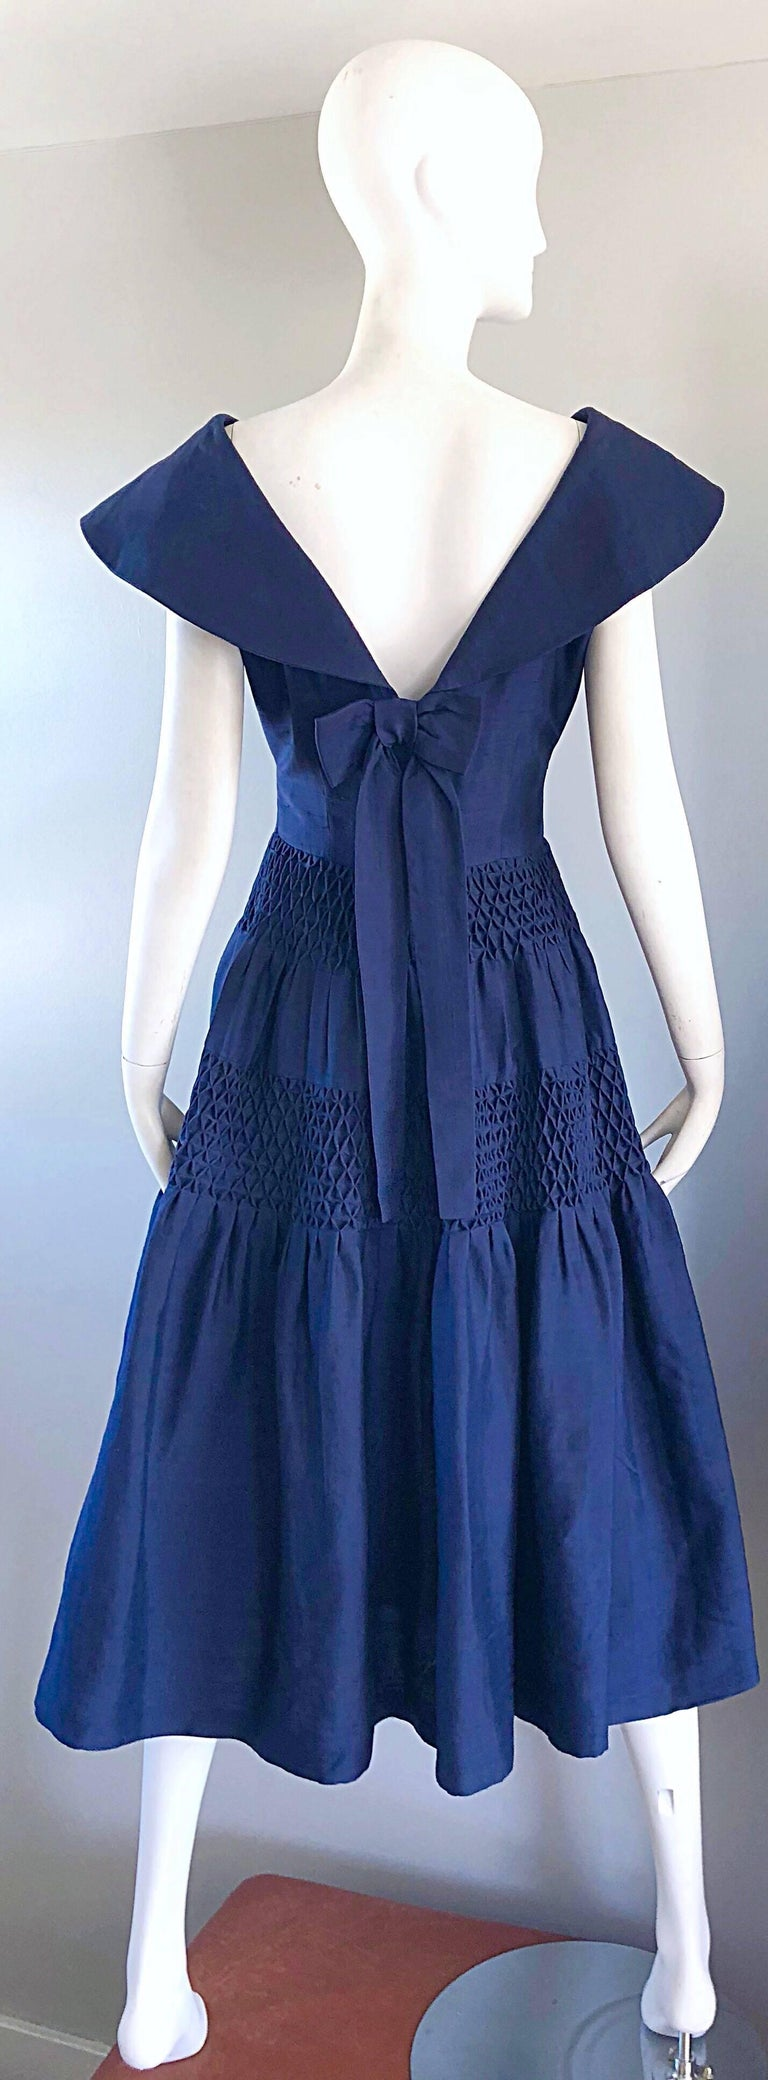 1950s Demi Couture Navy Blue Silk Shantung Vintage 50s Nautical Dress In Excellent Condition For Sale In Chicago, IL